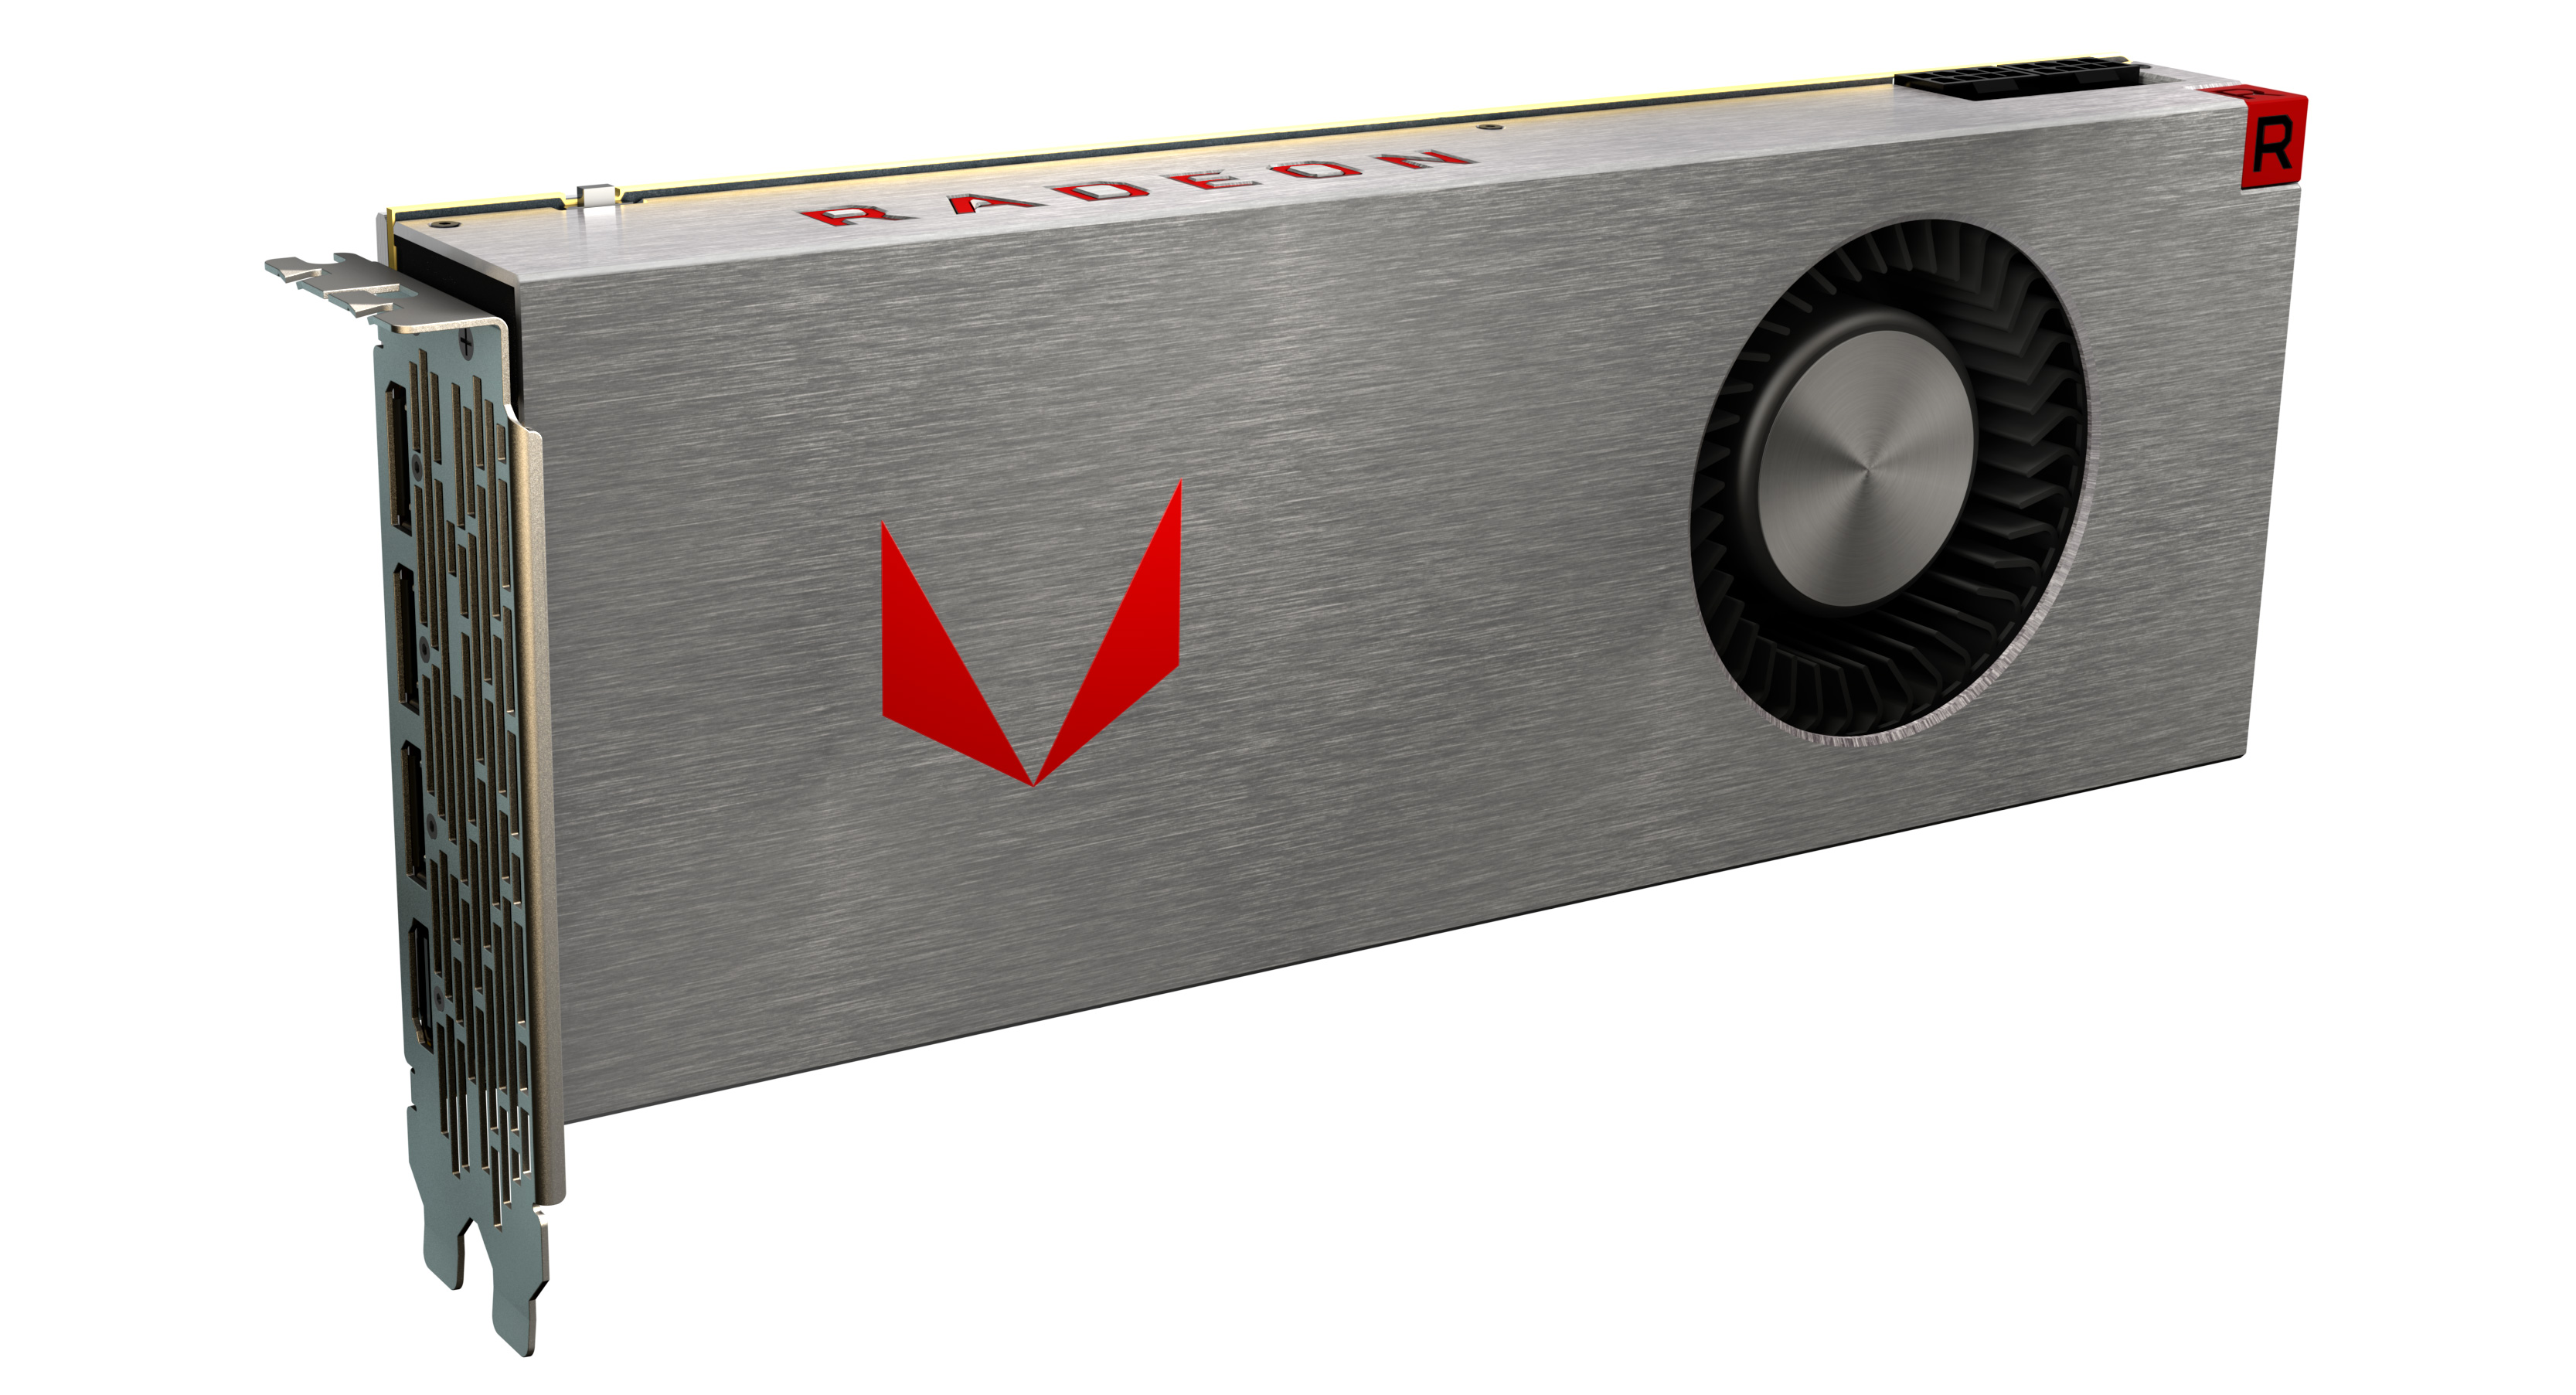 Rx Vega 64 And Rx Vega 56 Amd Will Trade Blows With Gtx 1080 For 499 Ars Technica